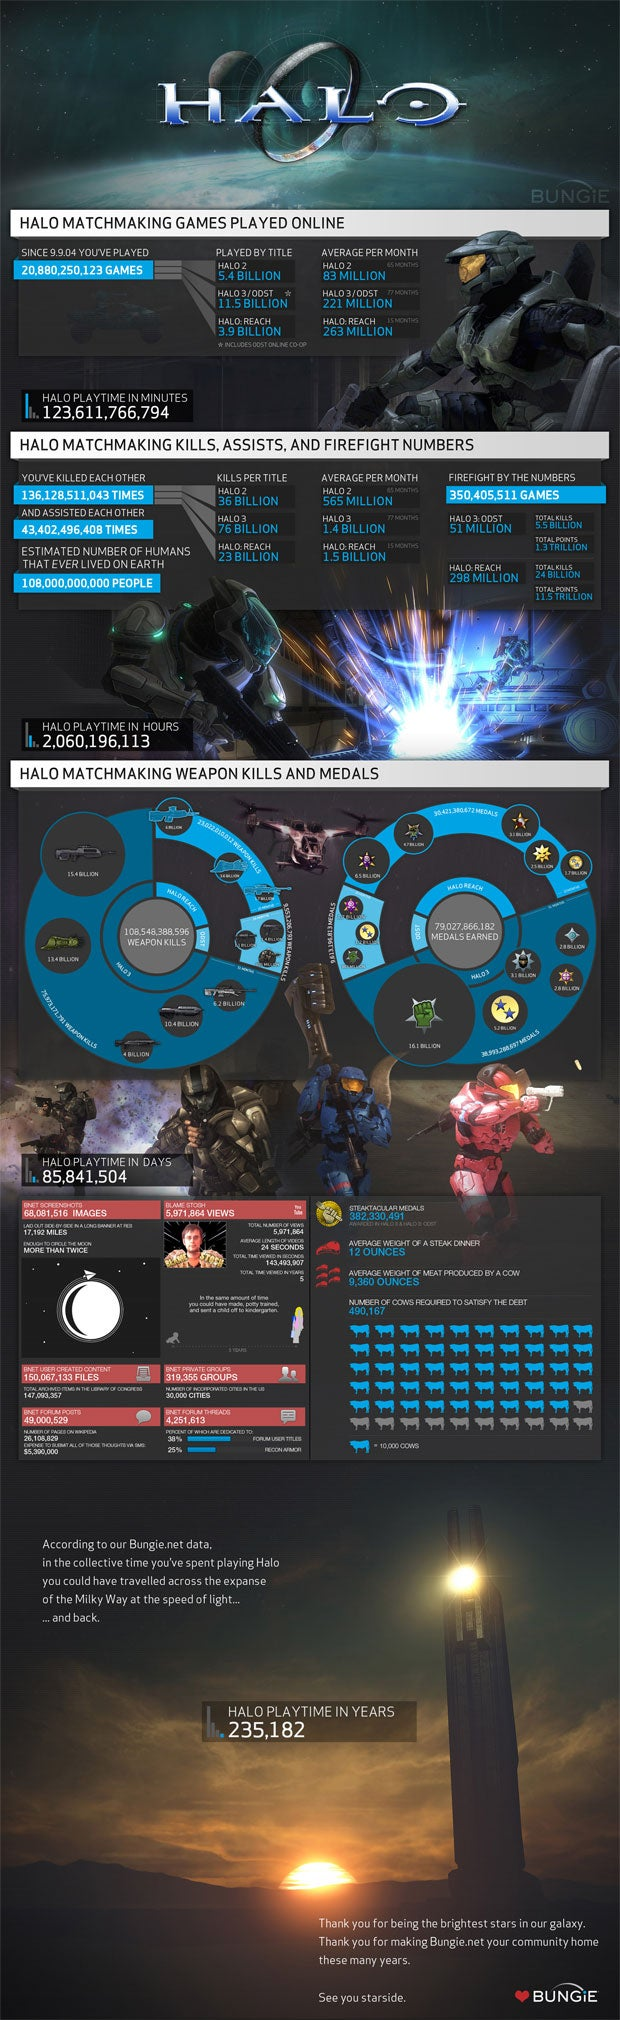 Bungie Says Goodbye to Halo With Brain-Exploding Stats Page